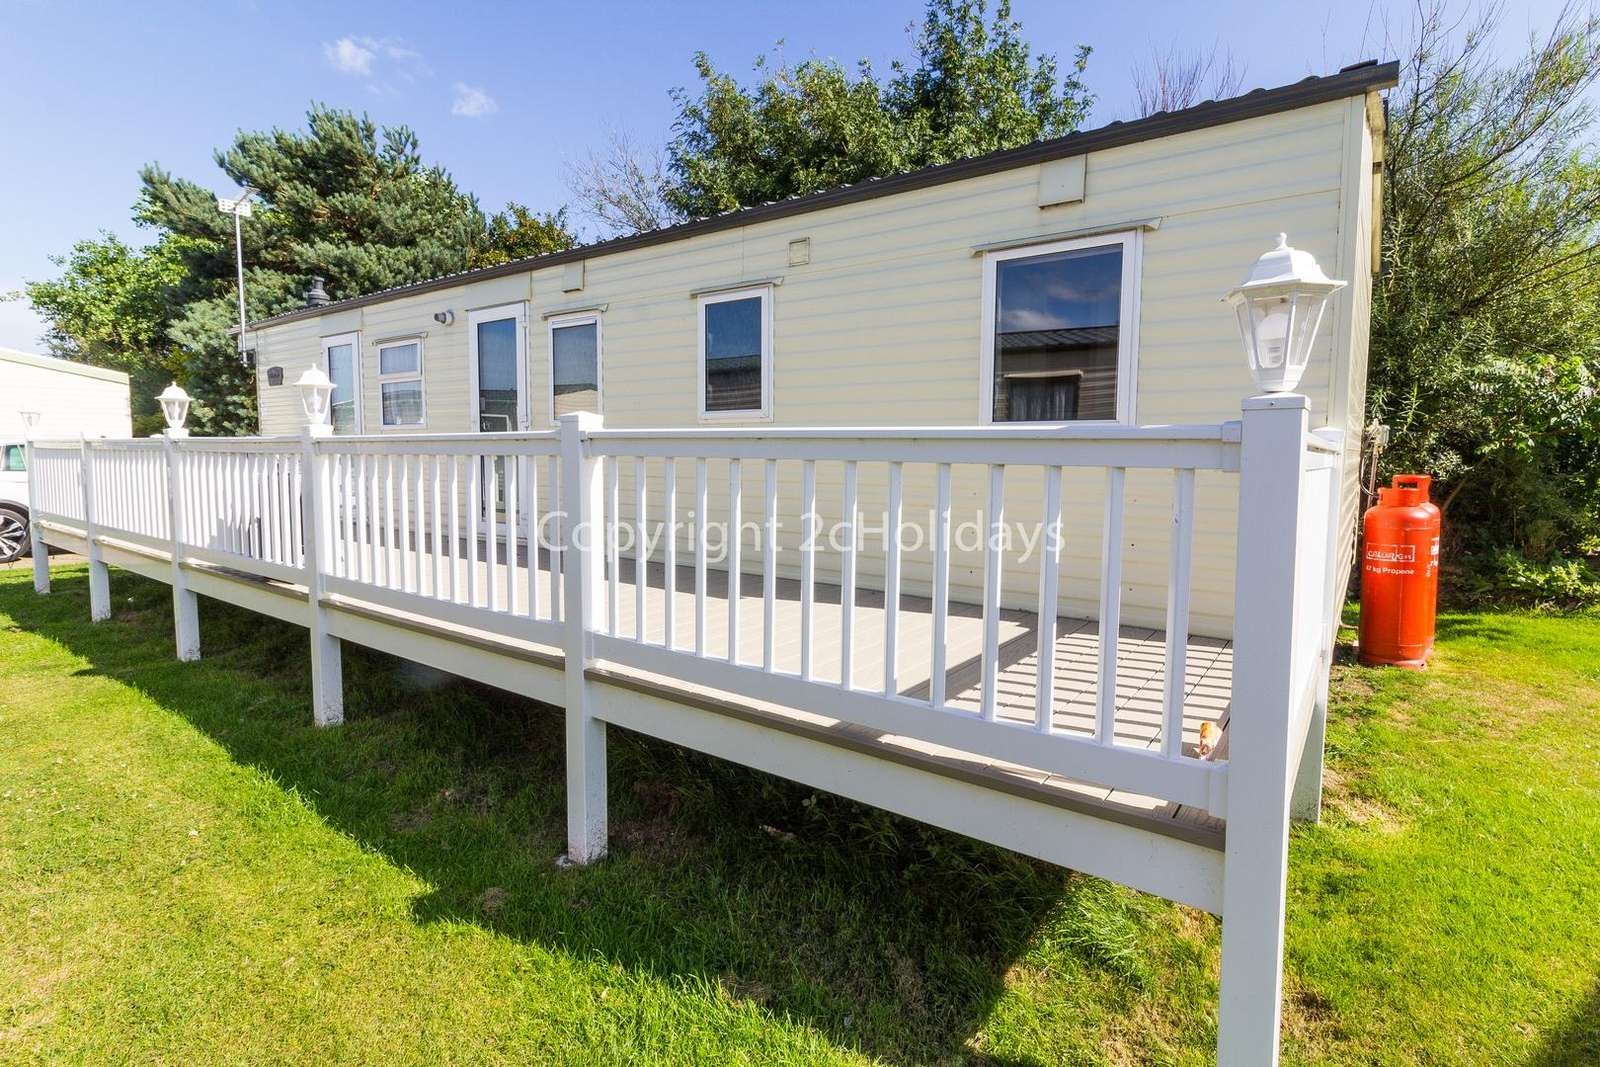 Gated enclosed decking, perfect for families and you dog(s) in this pet-friendly accommodation